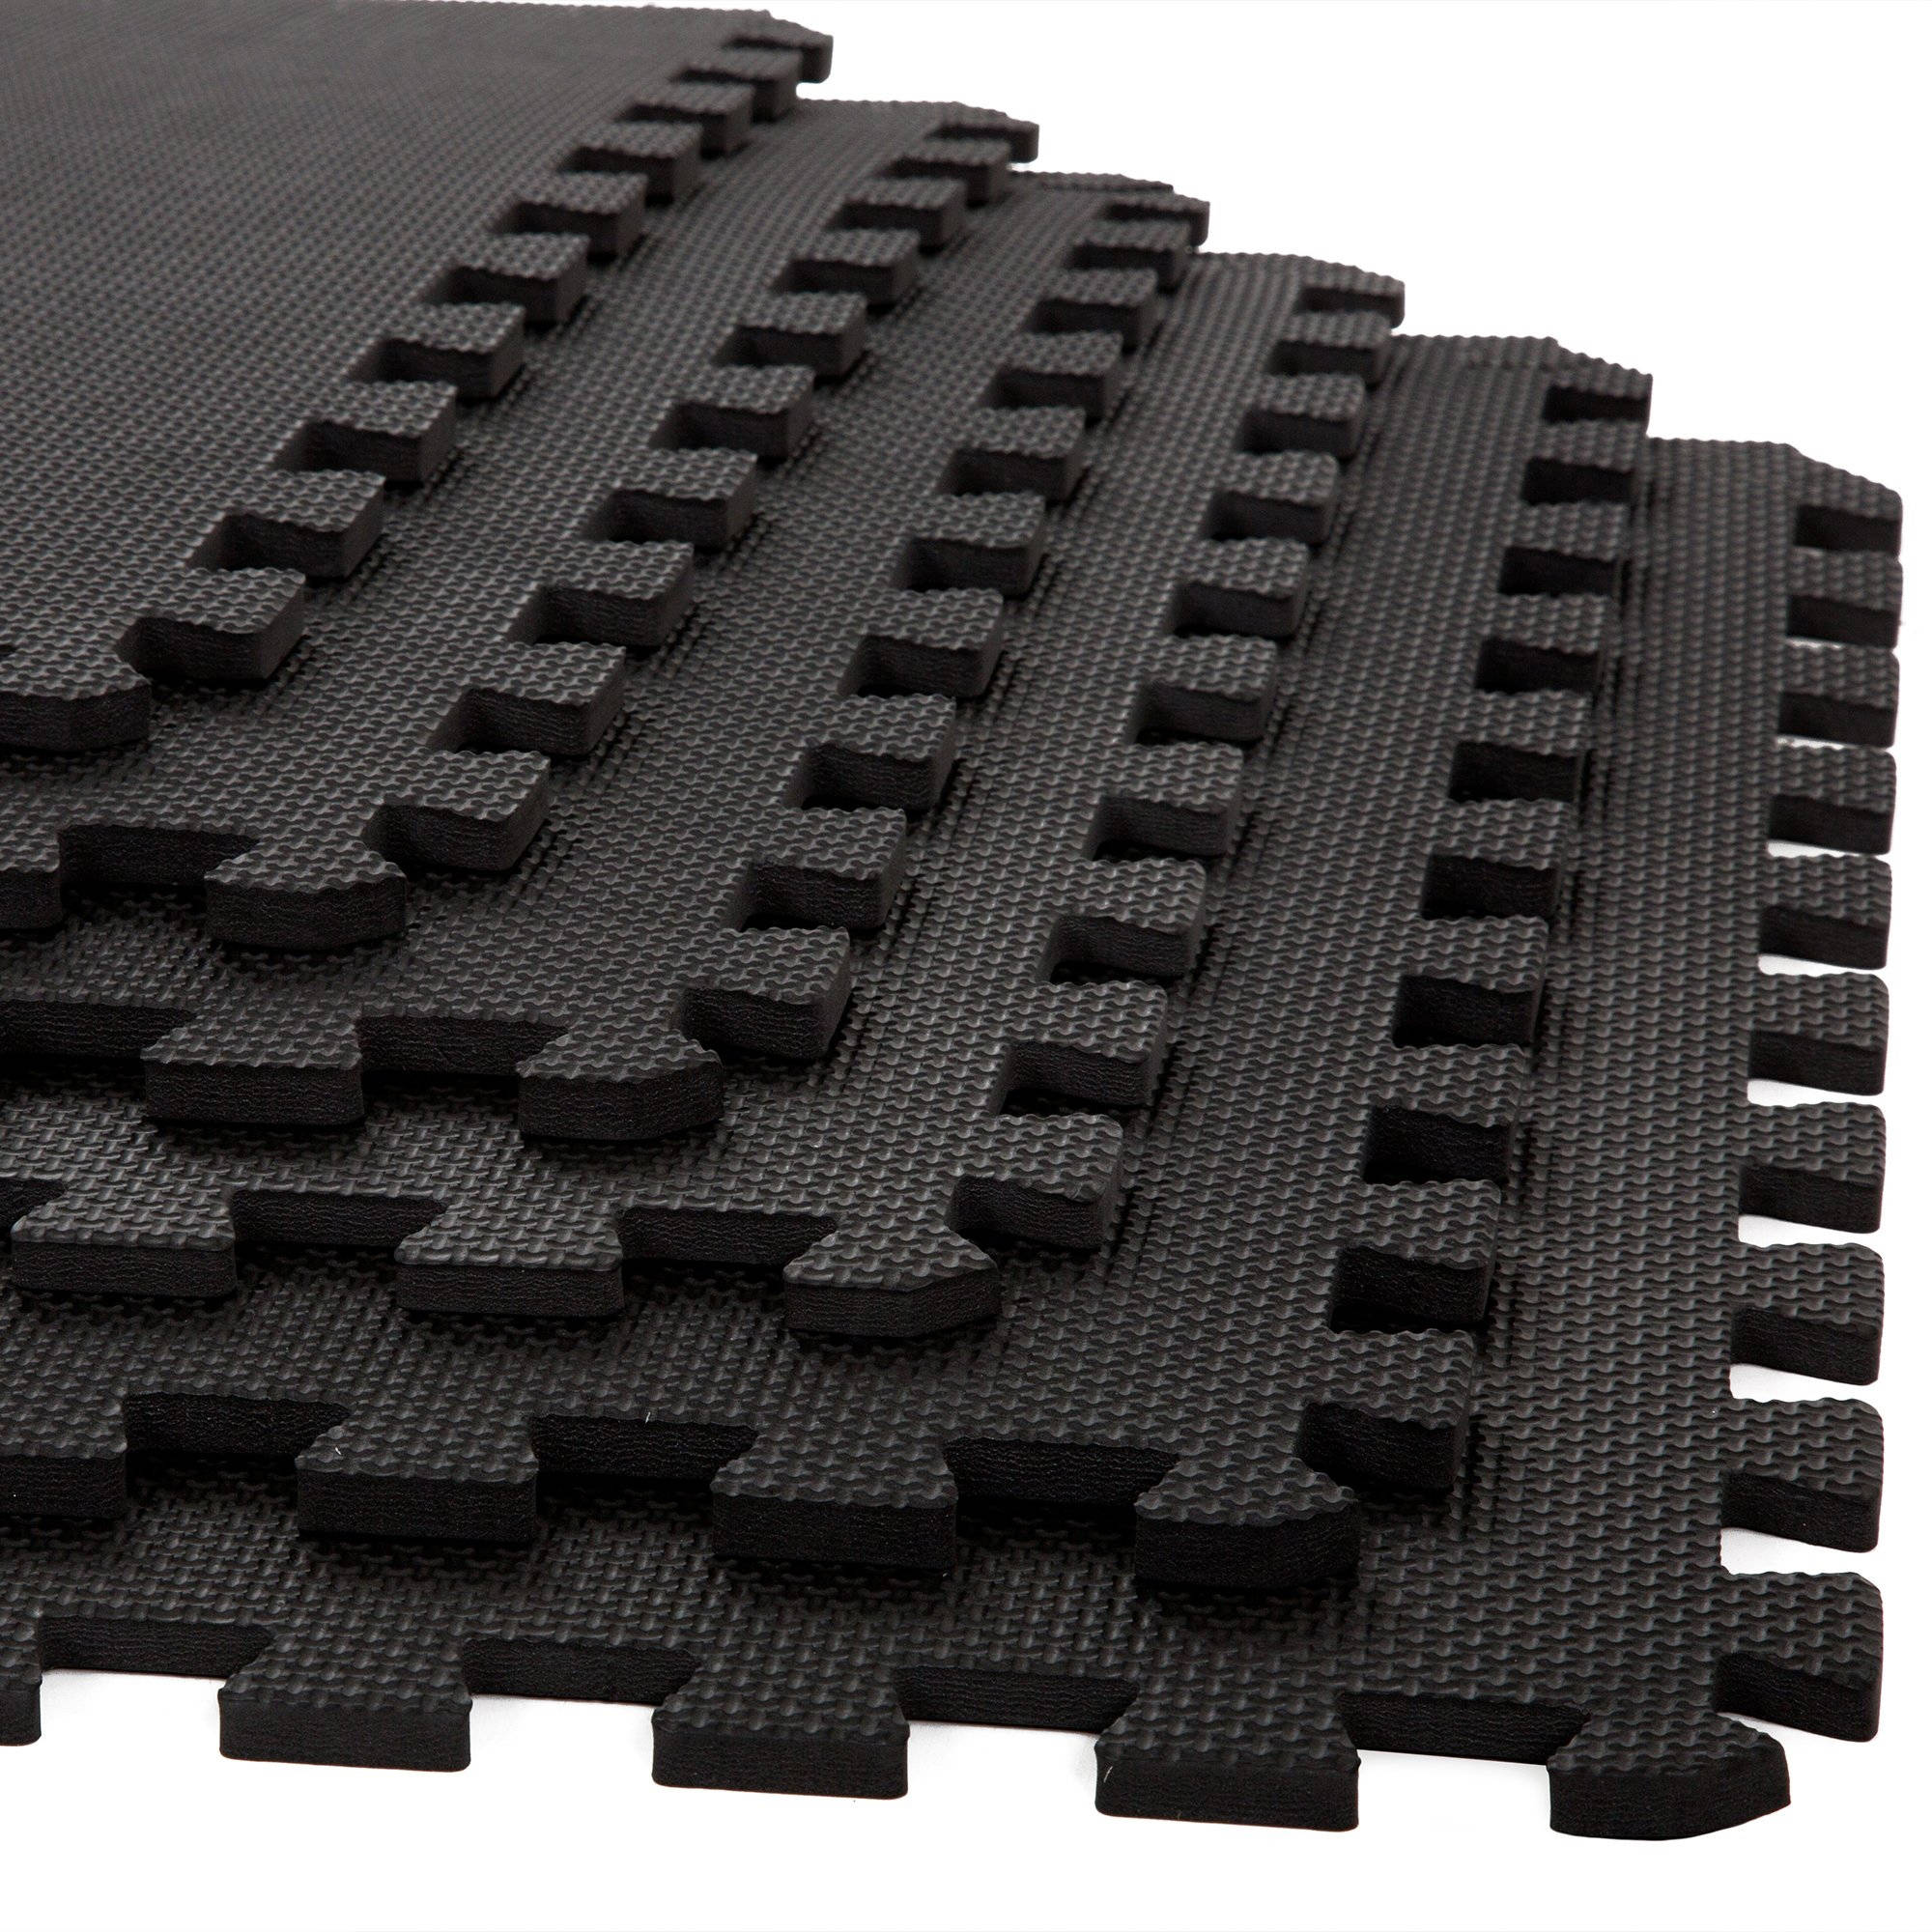 Foam Mat Floor Tiles, Interlocking EVA Foam Padding By Stalwart     Soft  Flooring